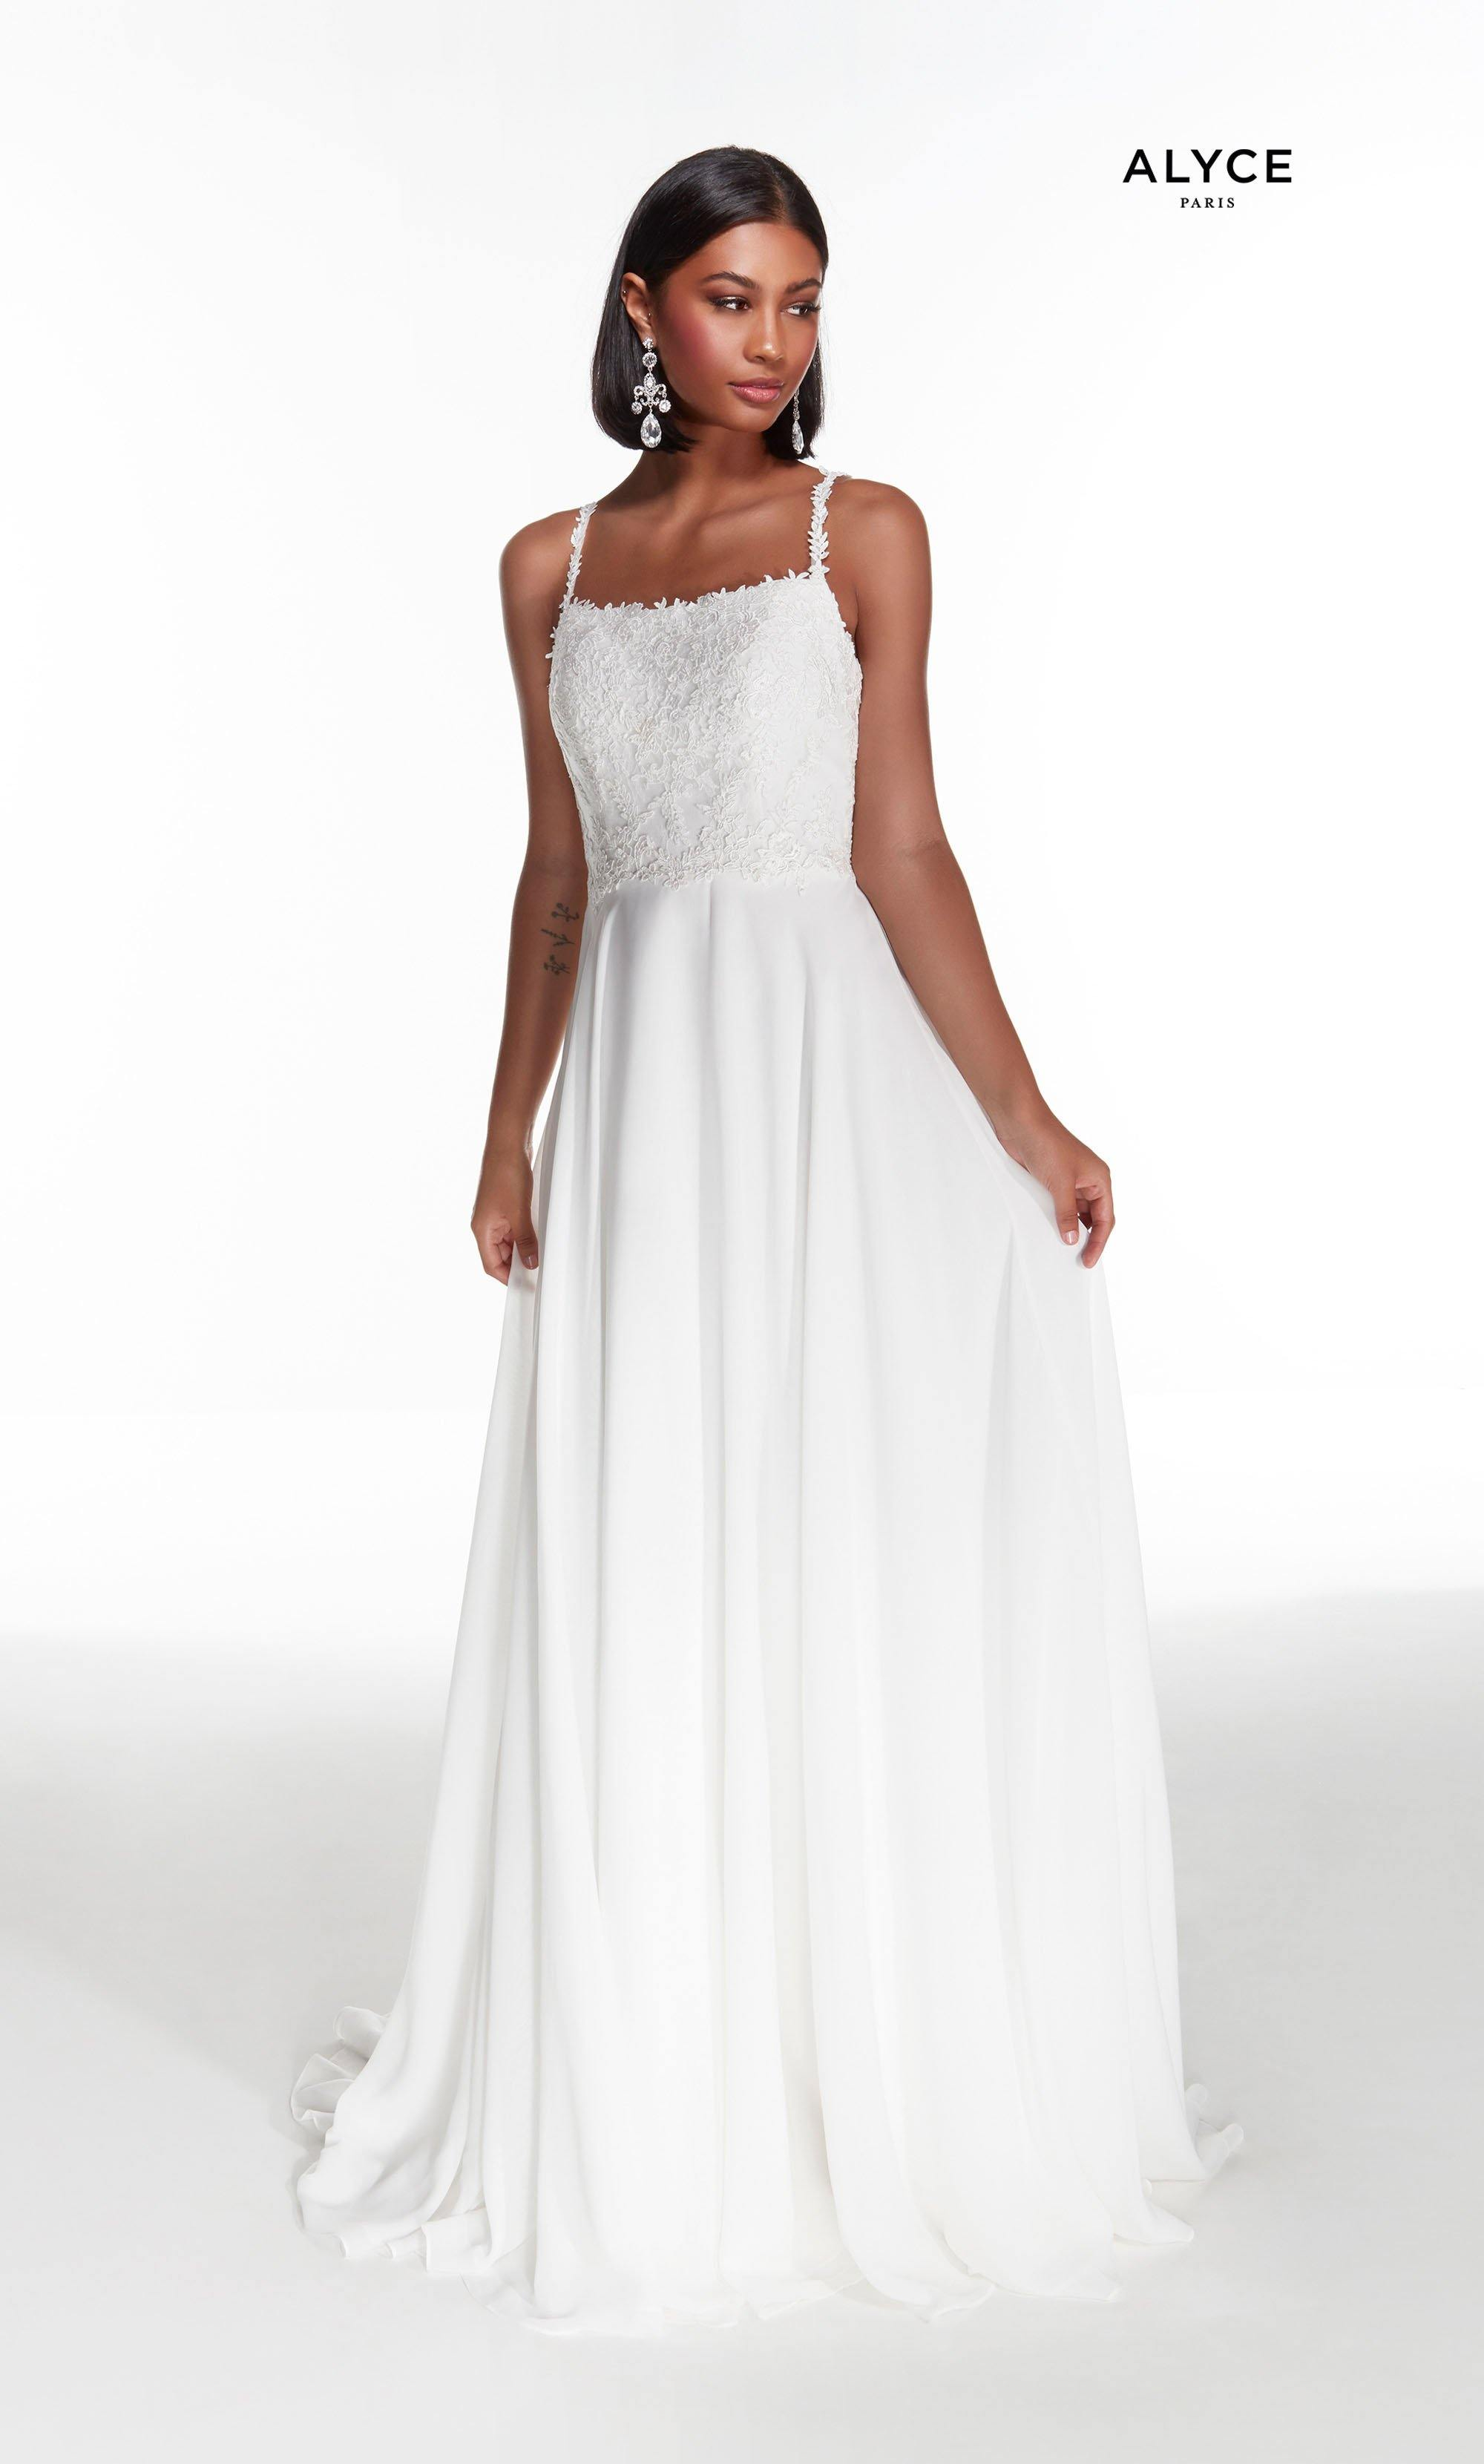 Diamond White flowy chiffon informal bridal gown featuring a lace bodice with a square neckline